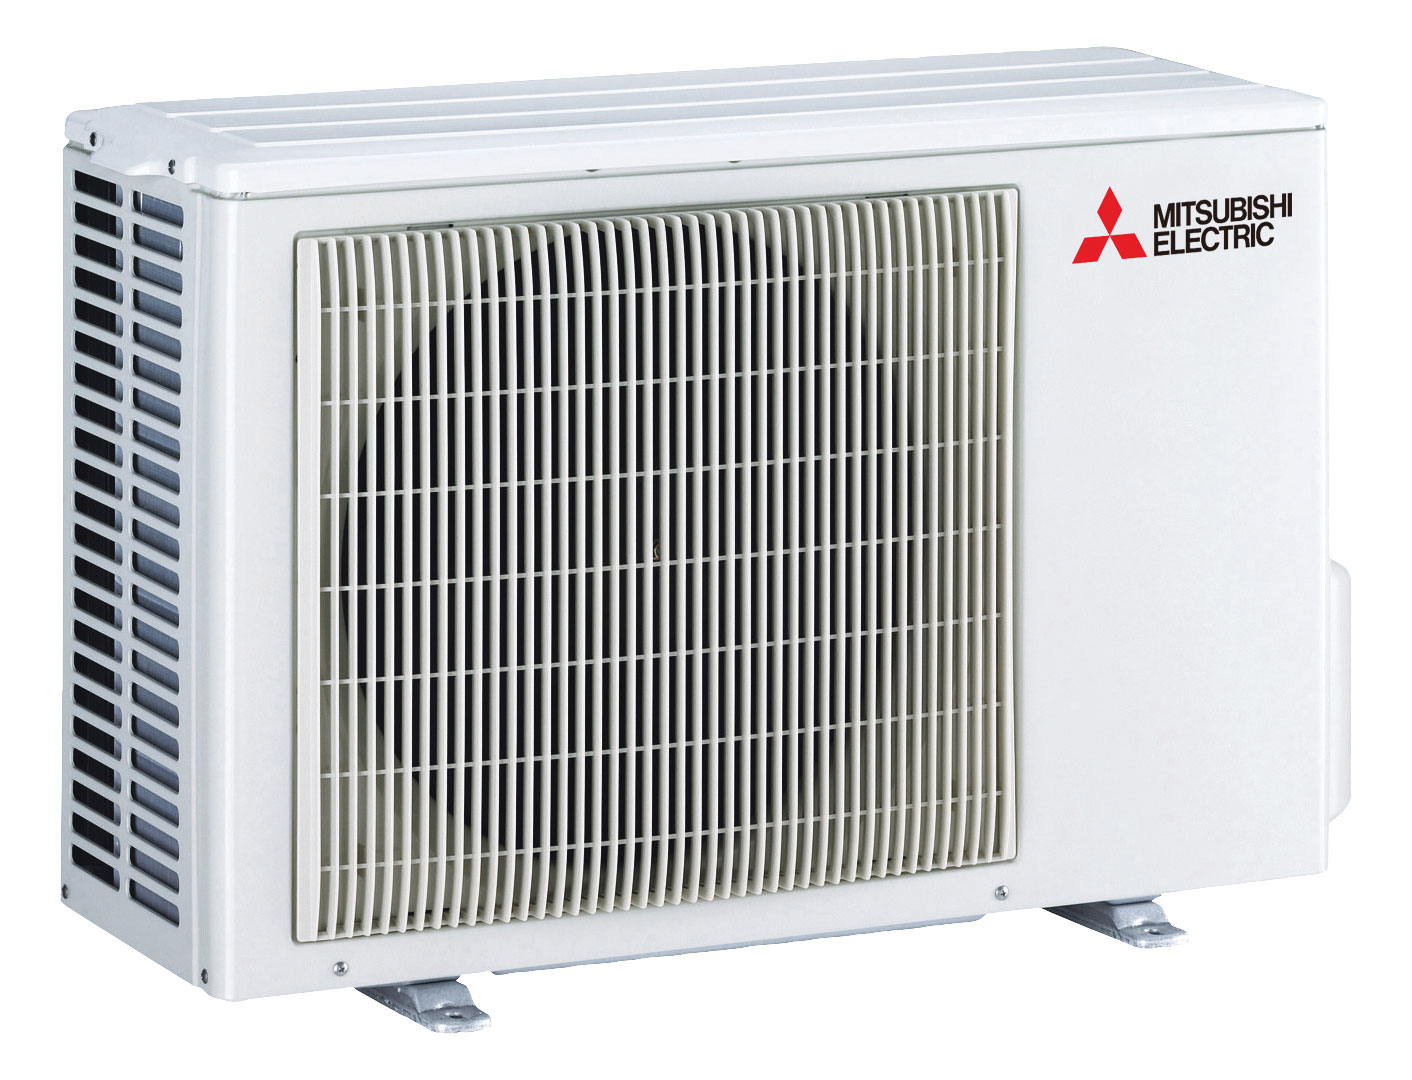 Наружный блок Mr. Slim SUZ-KA35VA6 Mitsubishi Electric 1